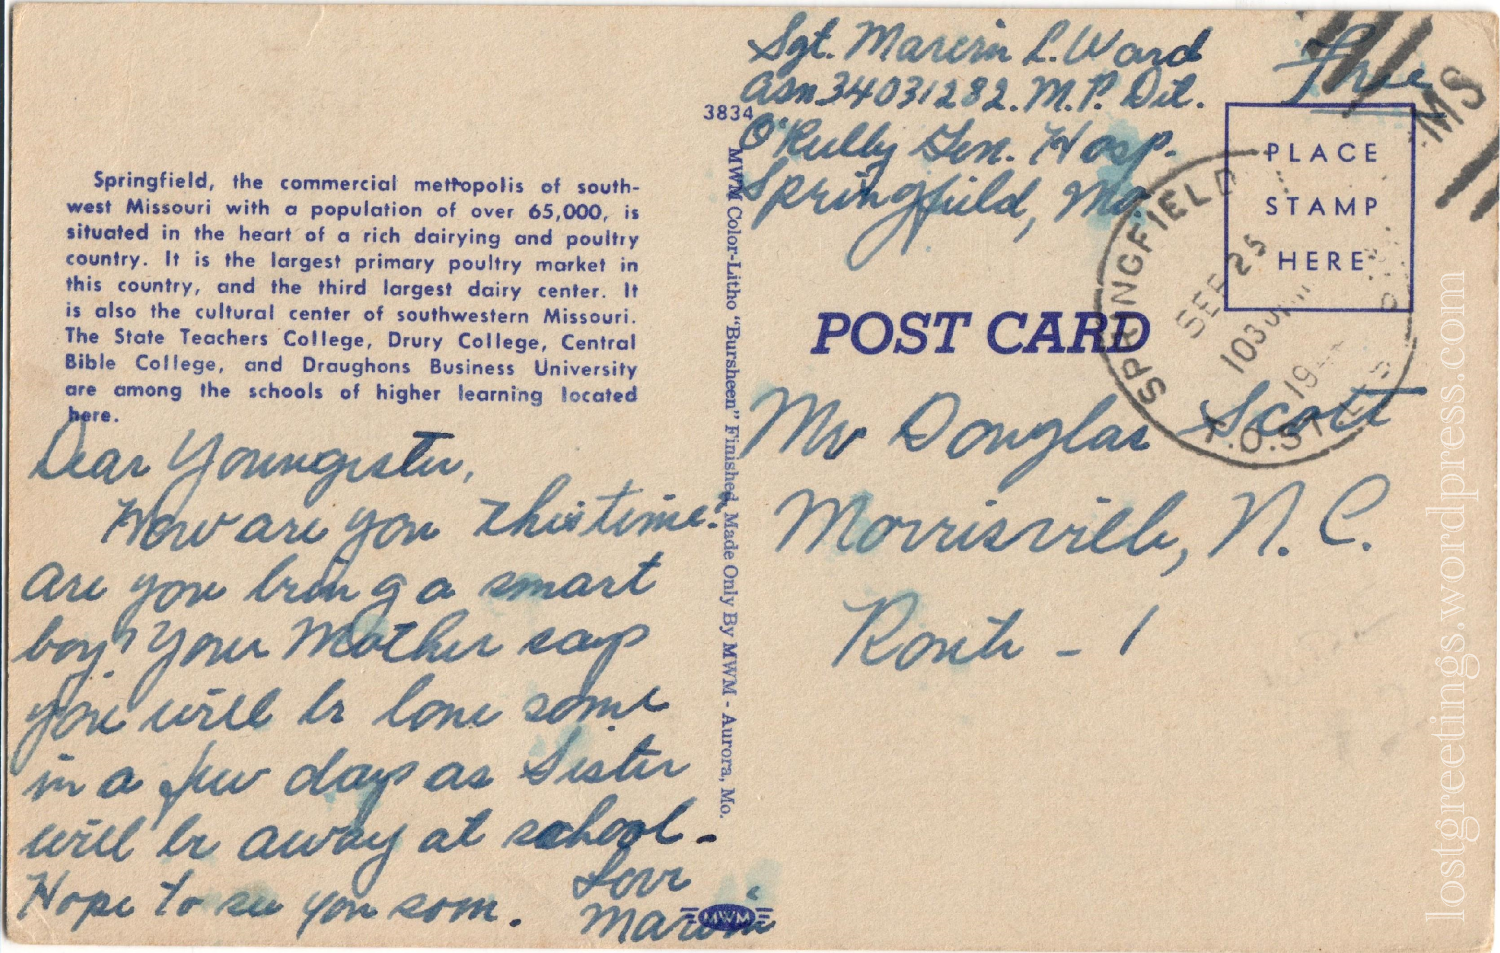 Springfield, MO War Dad_s Canteen 1944 ww2 postcard message lg